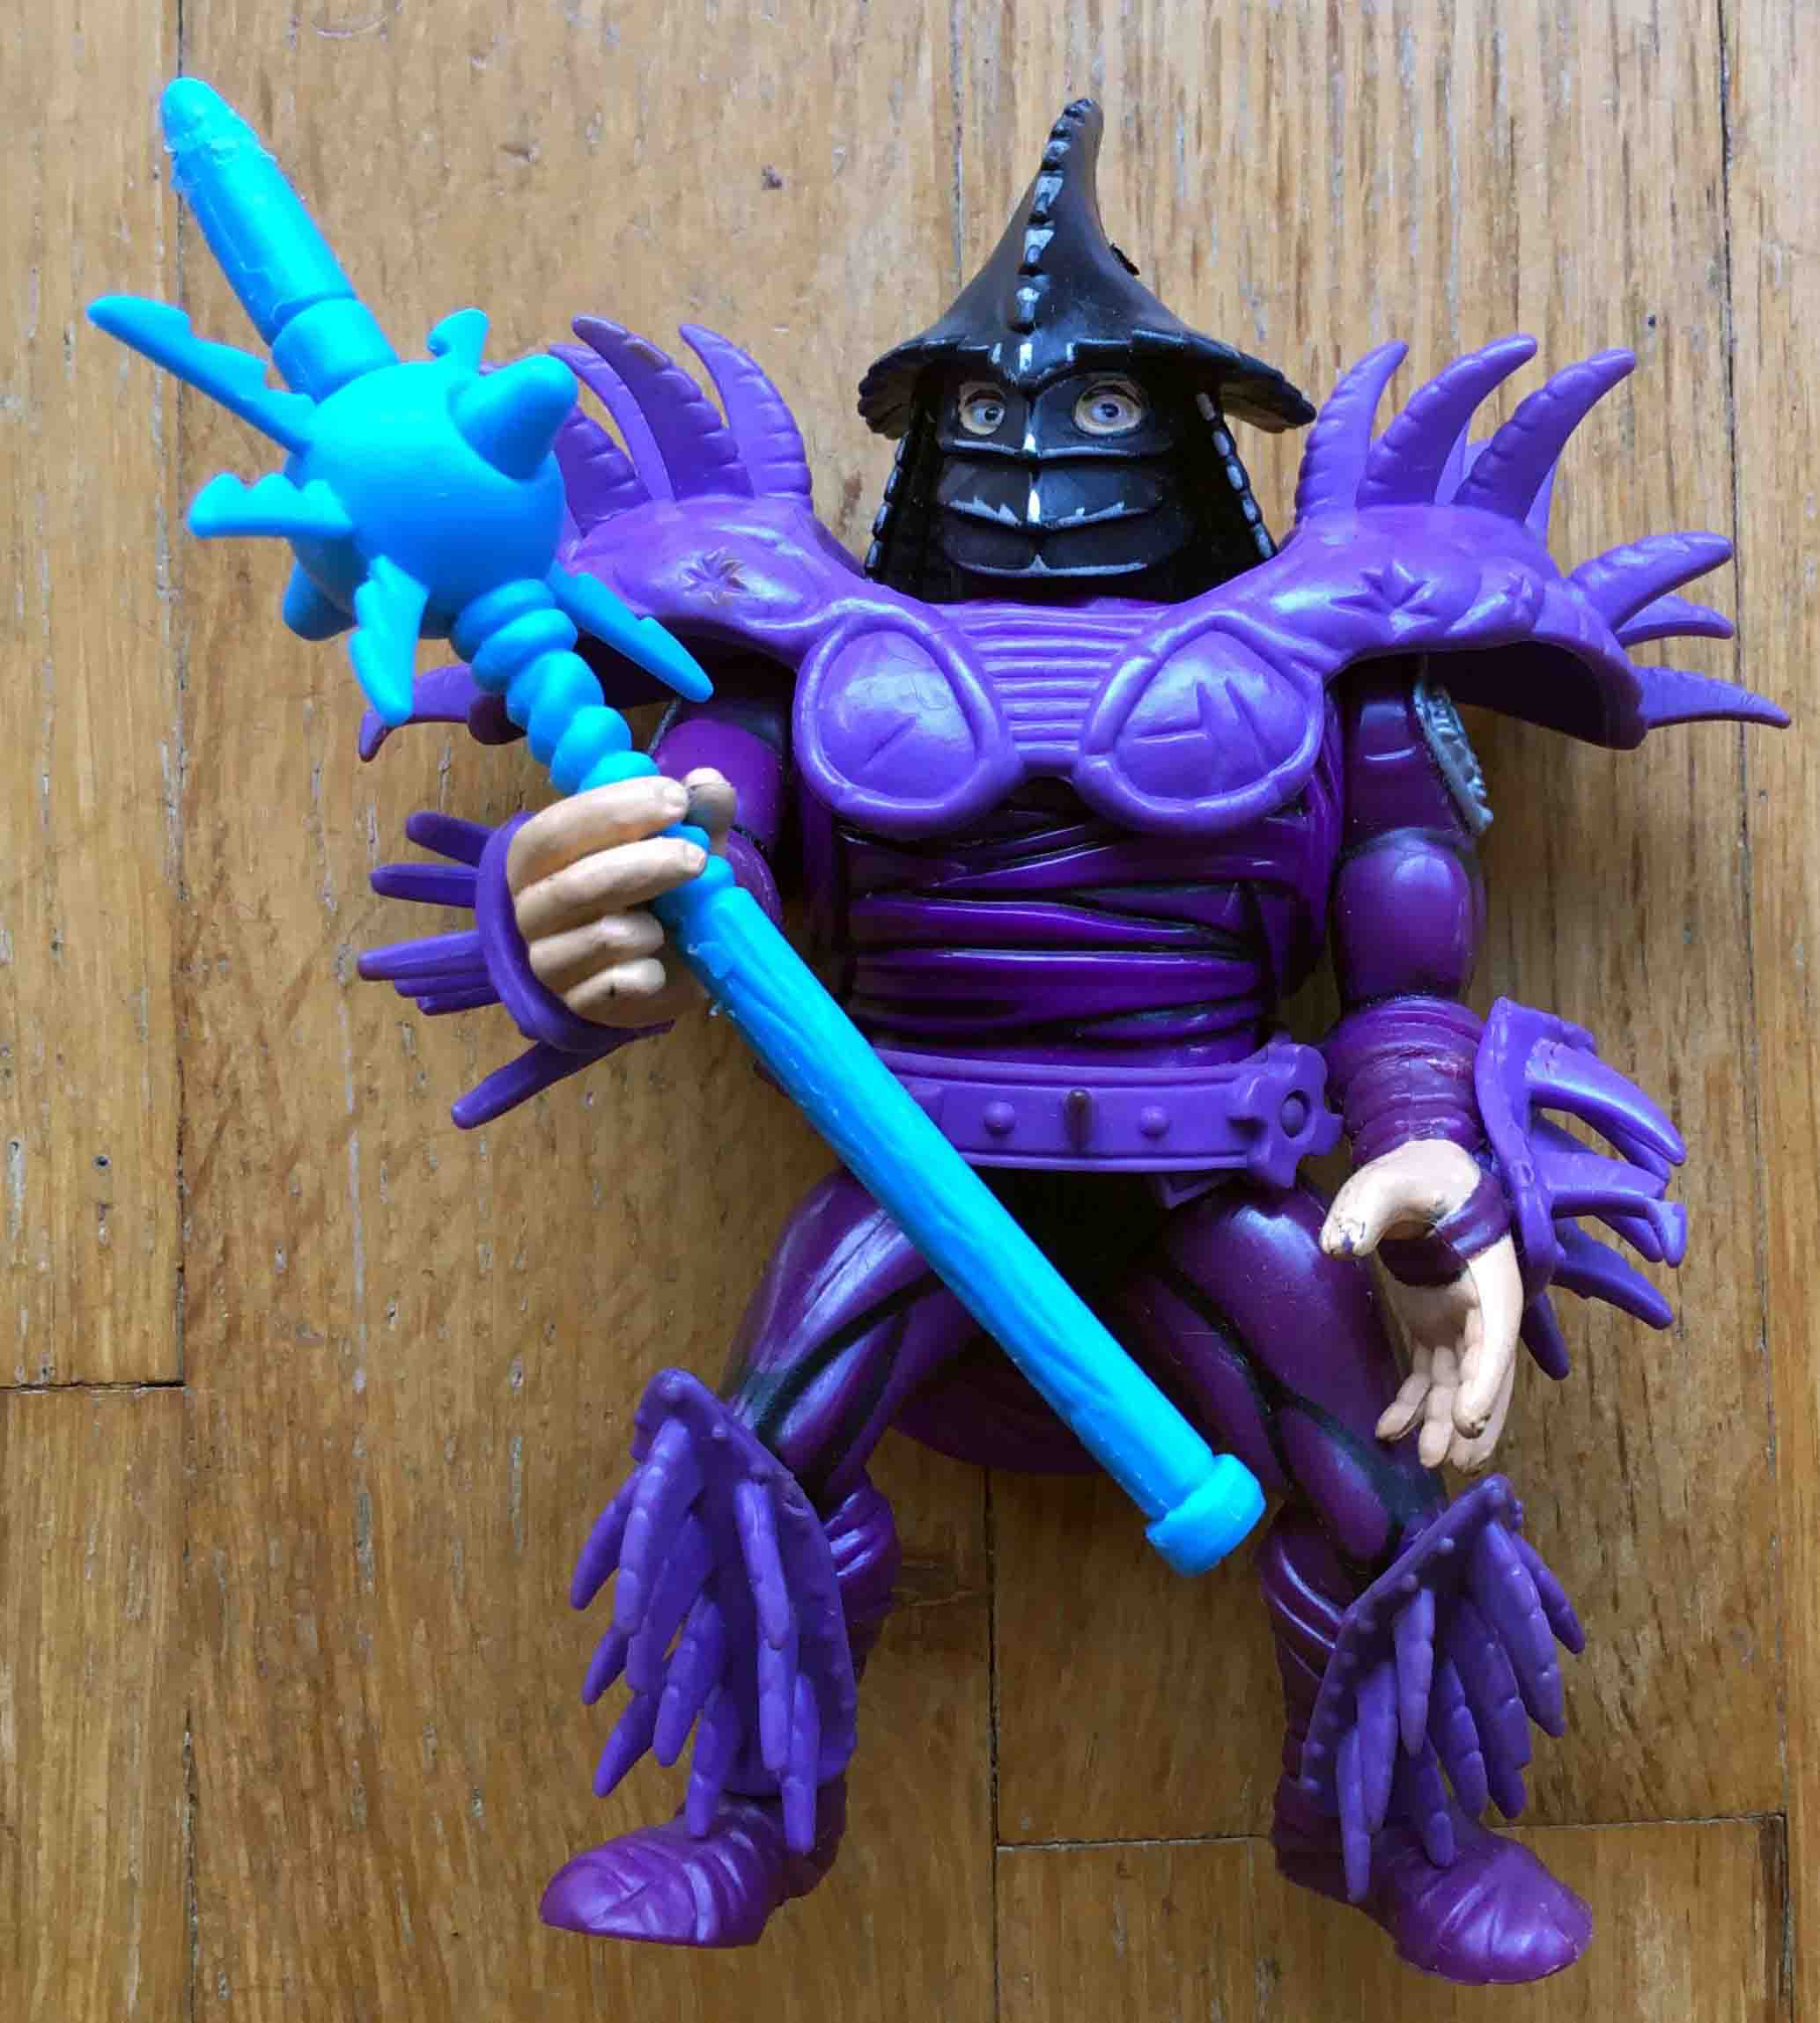 1991 TMNT All Purple armor SUPER SHREDDER German UK Europe Loose Figure.